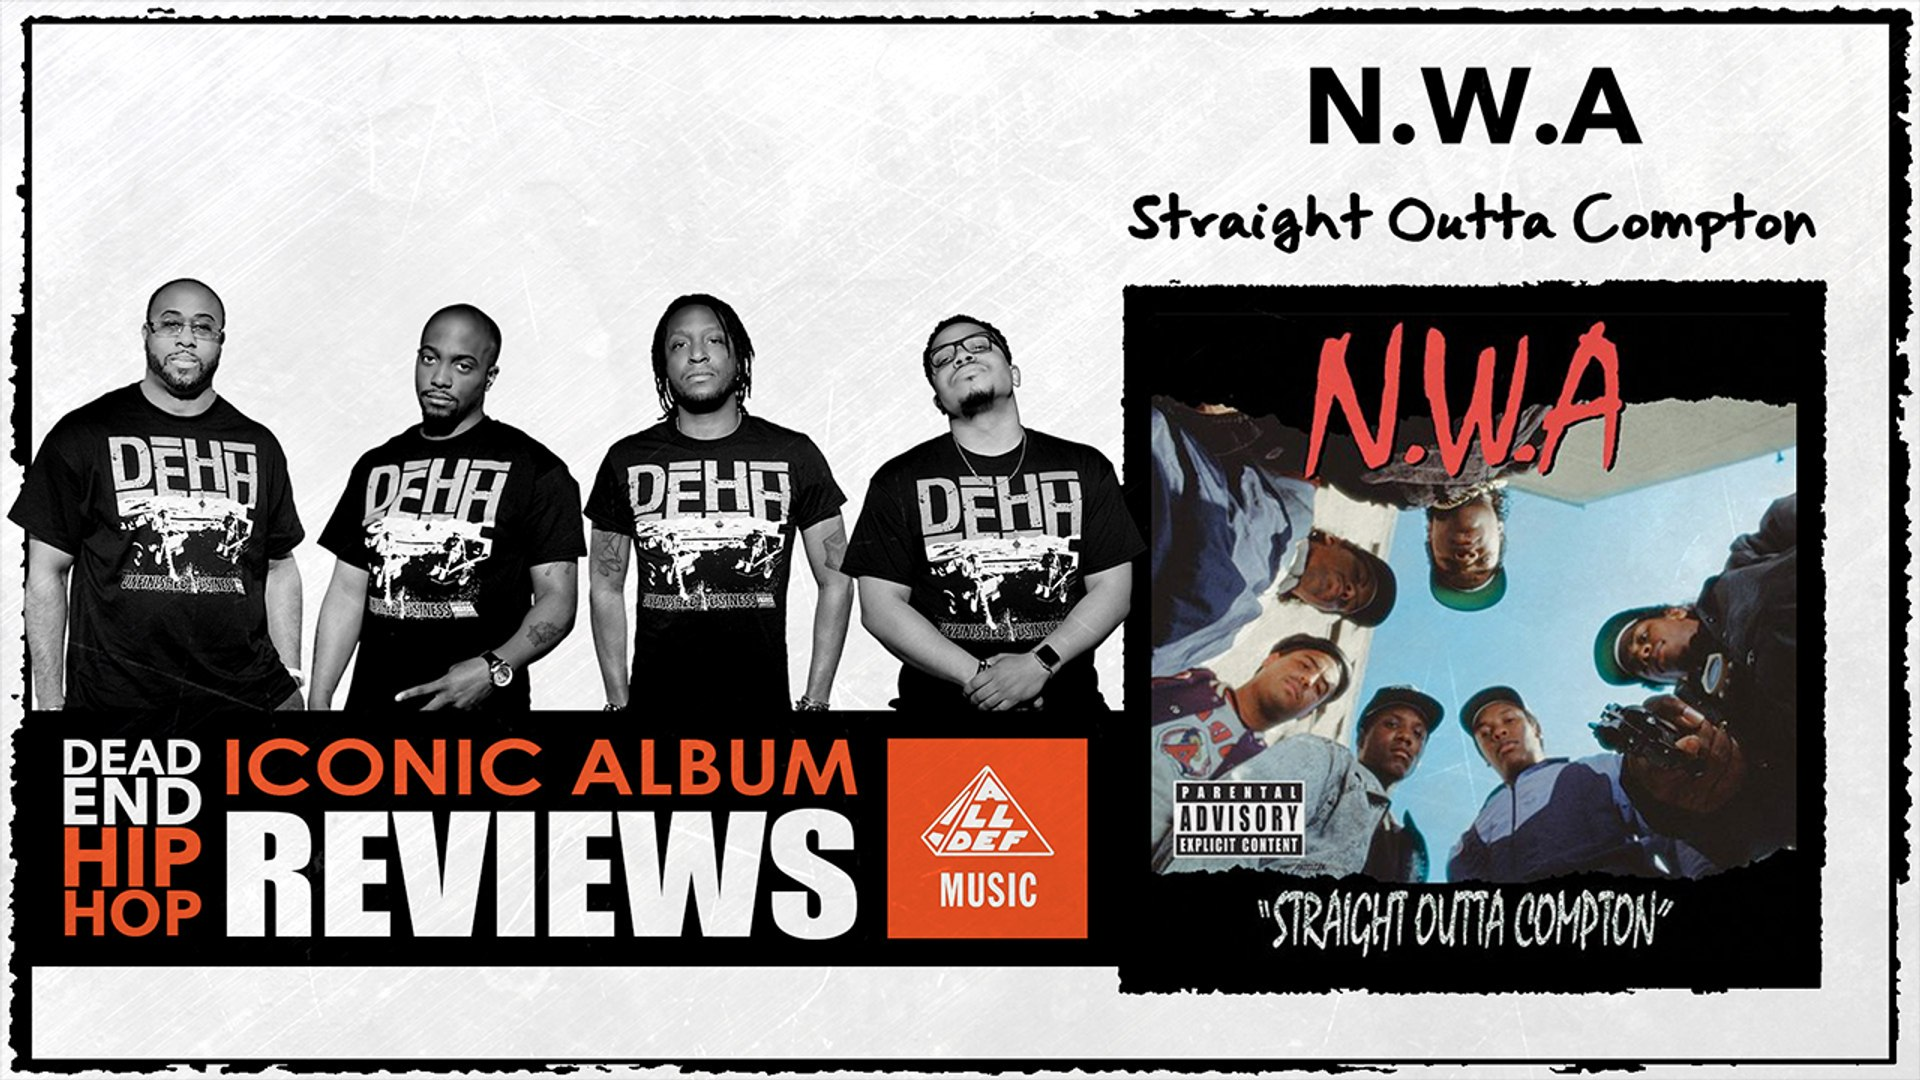 N W A Straight Outta Compton Album Review By Dead End Hip Hop